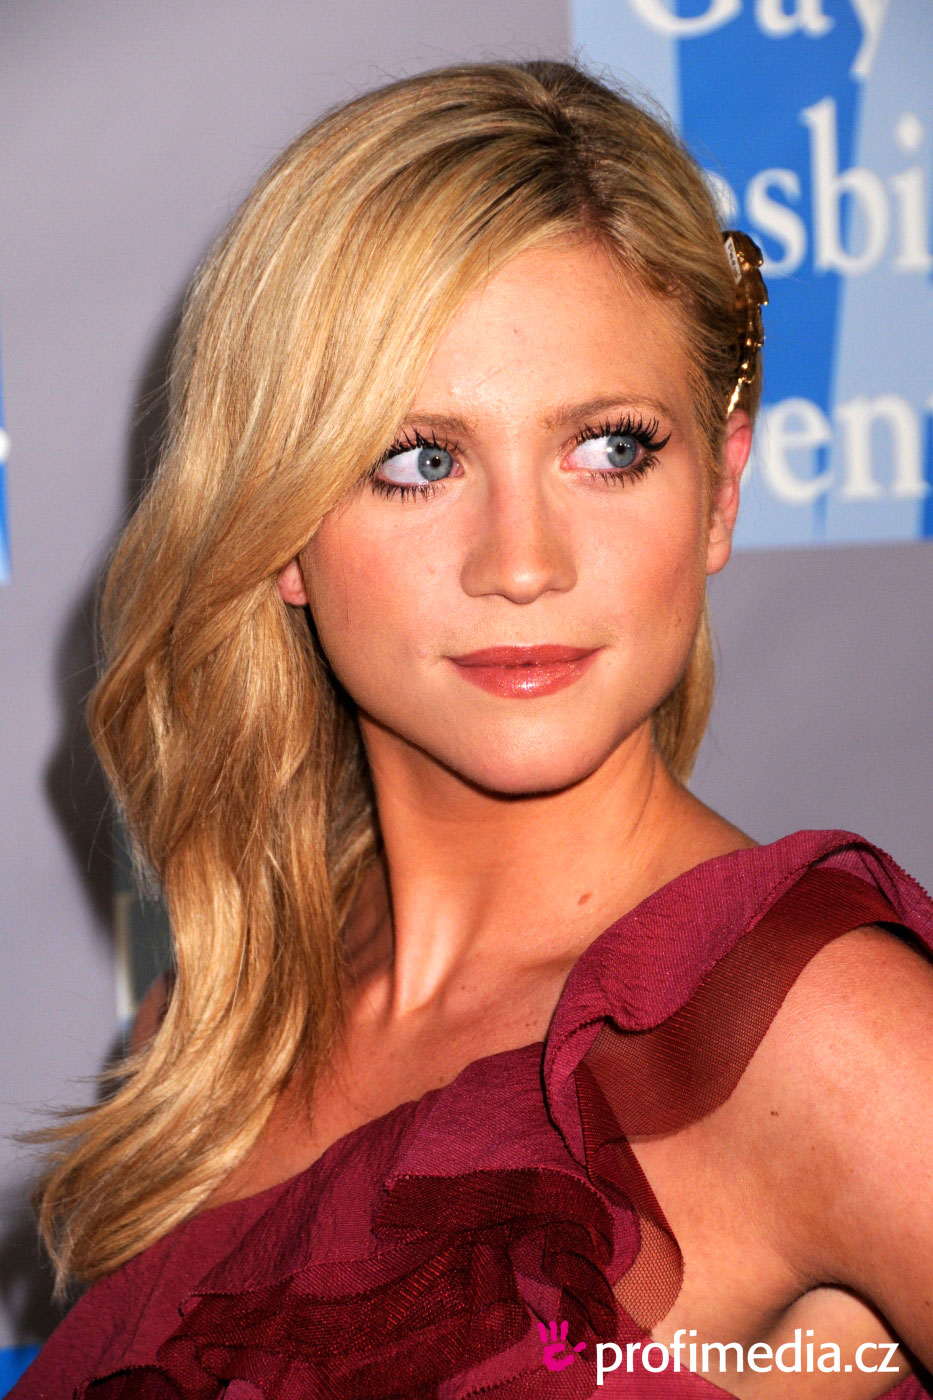 Brittany Snow - Photo Colection